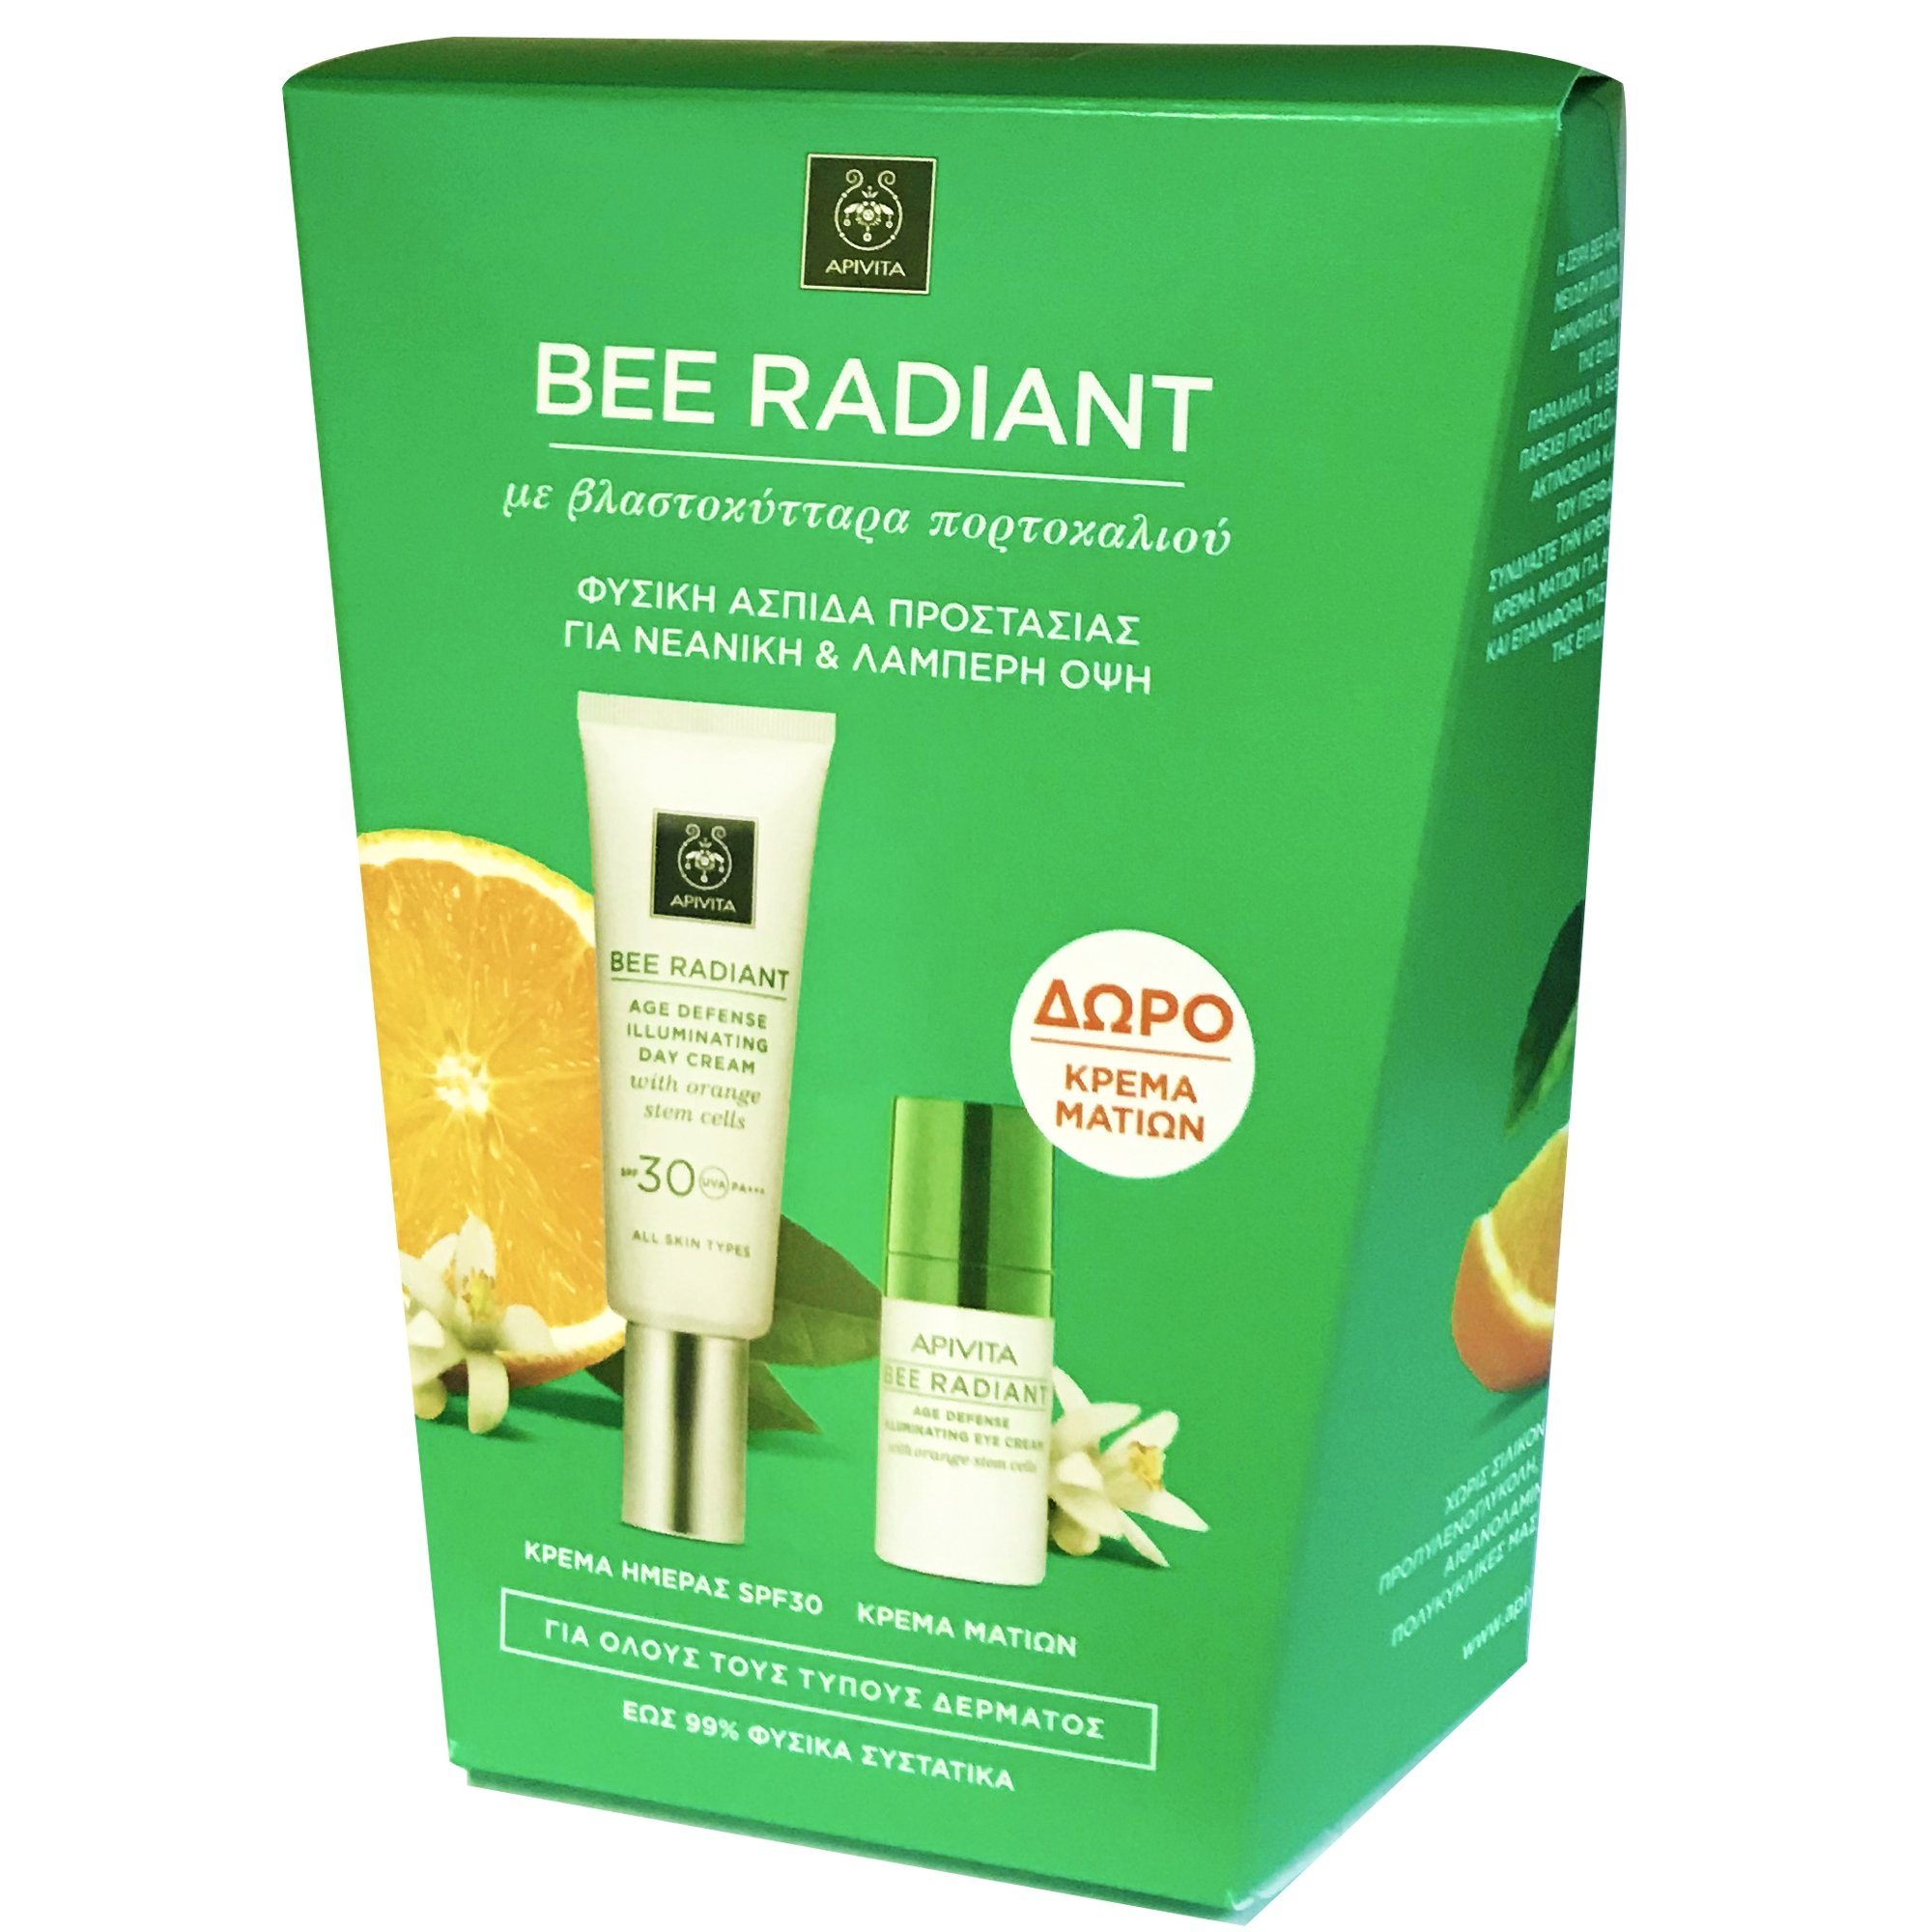 Apivita Πακέτο Προσφοράς Bee Radiant Age Defence Illuminating Day Cream Spf30, 40ml & Bee Radiant Eye Cream 15ml